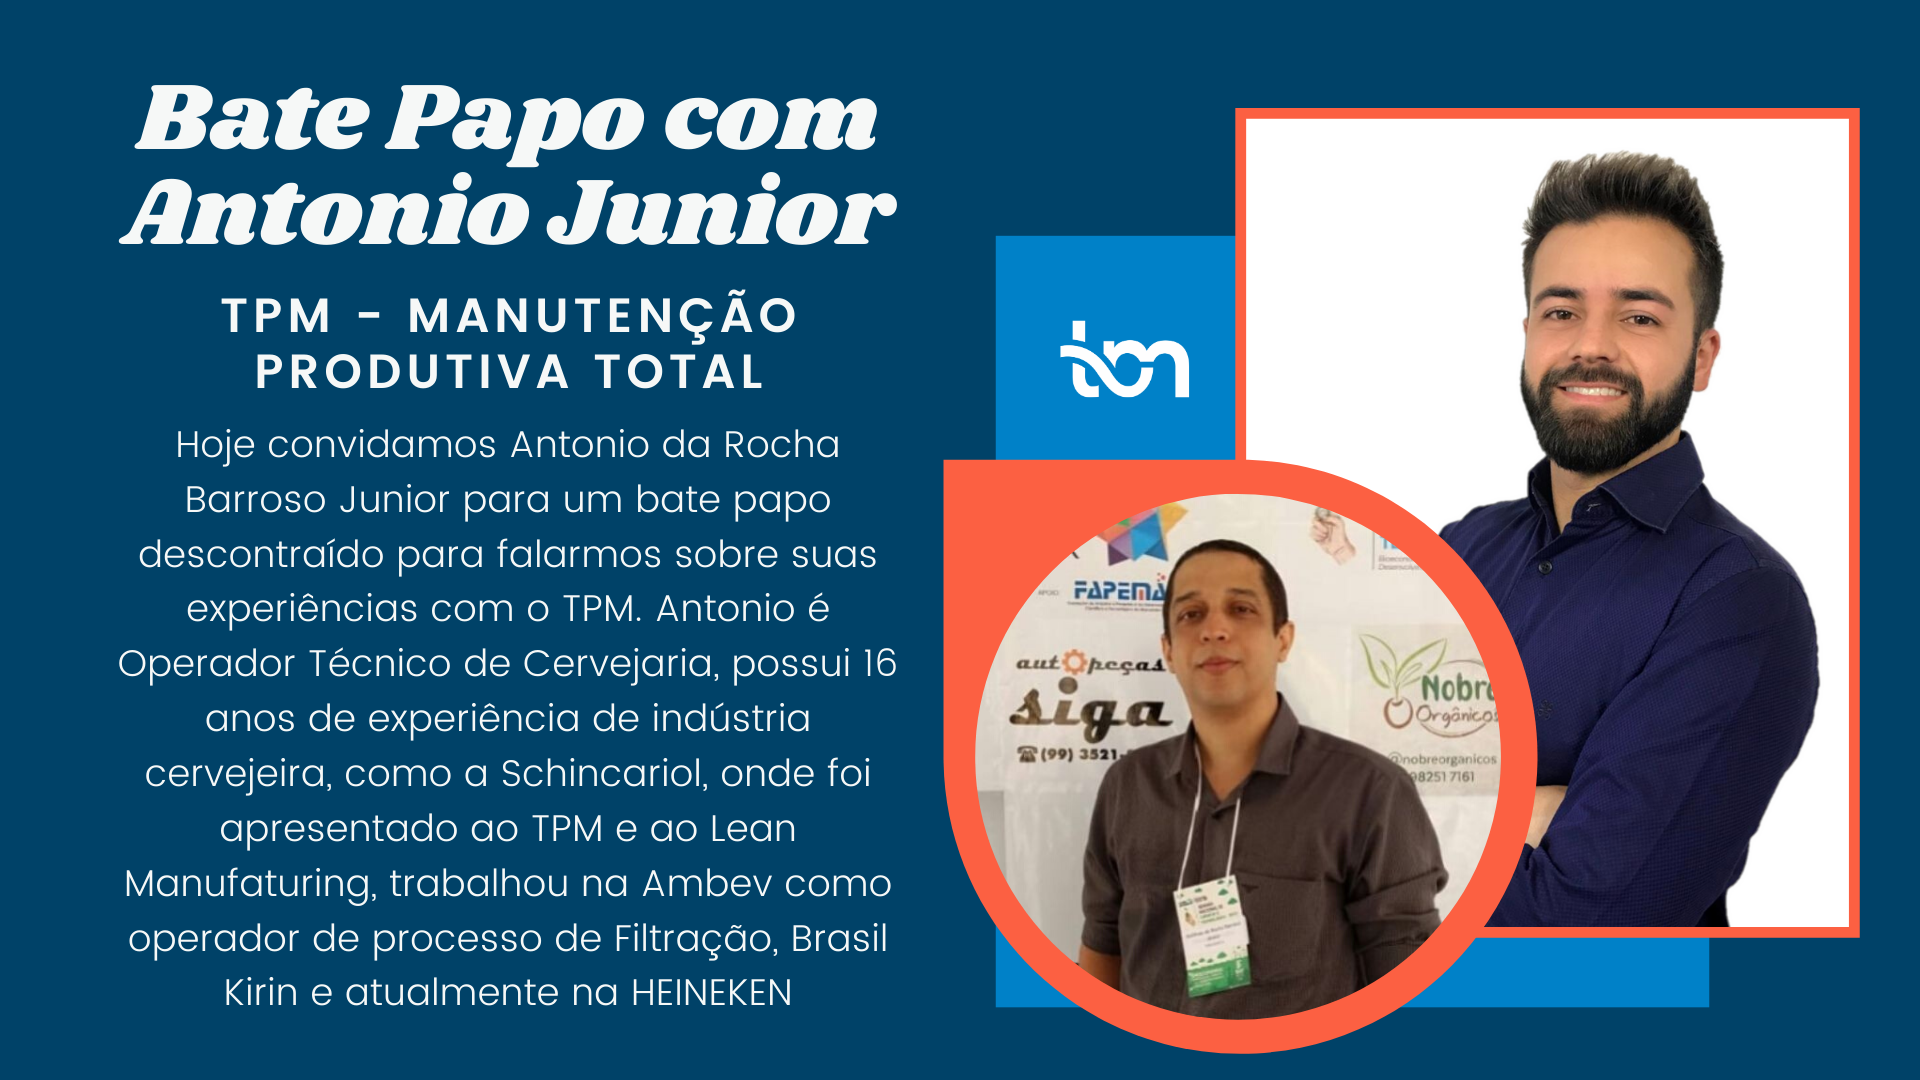 Bate Papo com Antonio junior